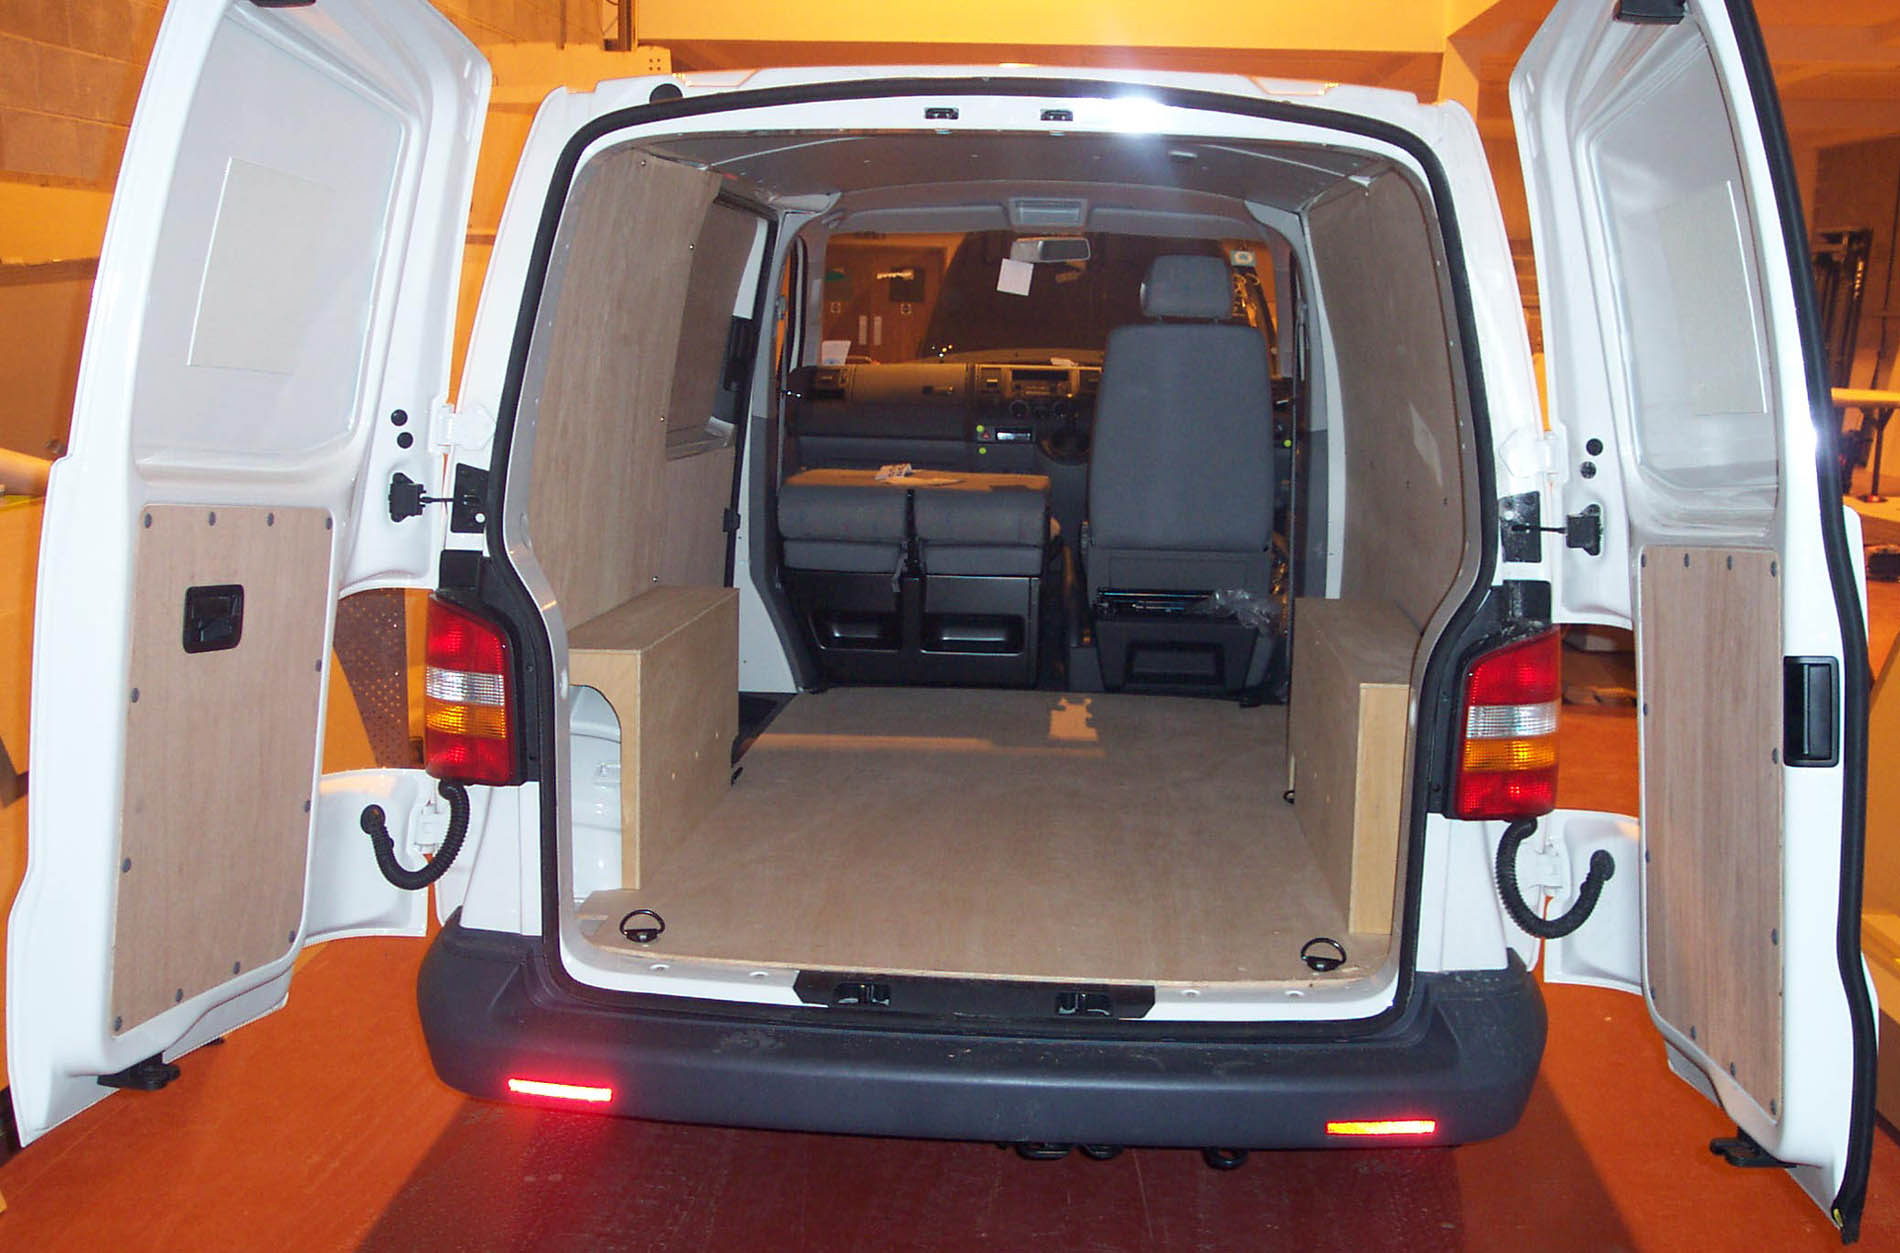 vw t5 short wheel base transporter van ply lining kit. Black Bedroom Furniture Sets. Home Design Ideas